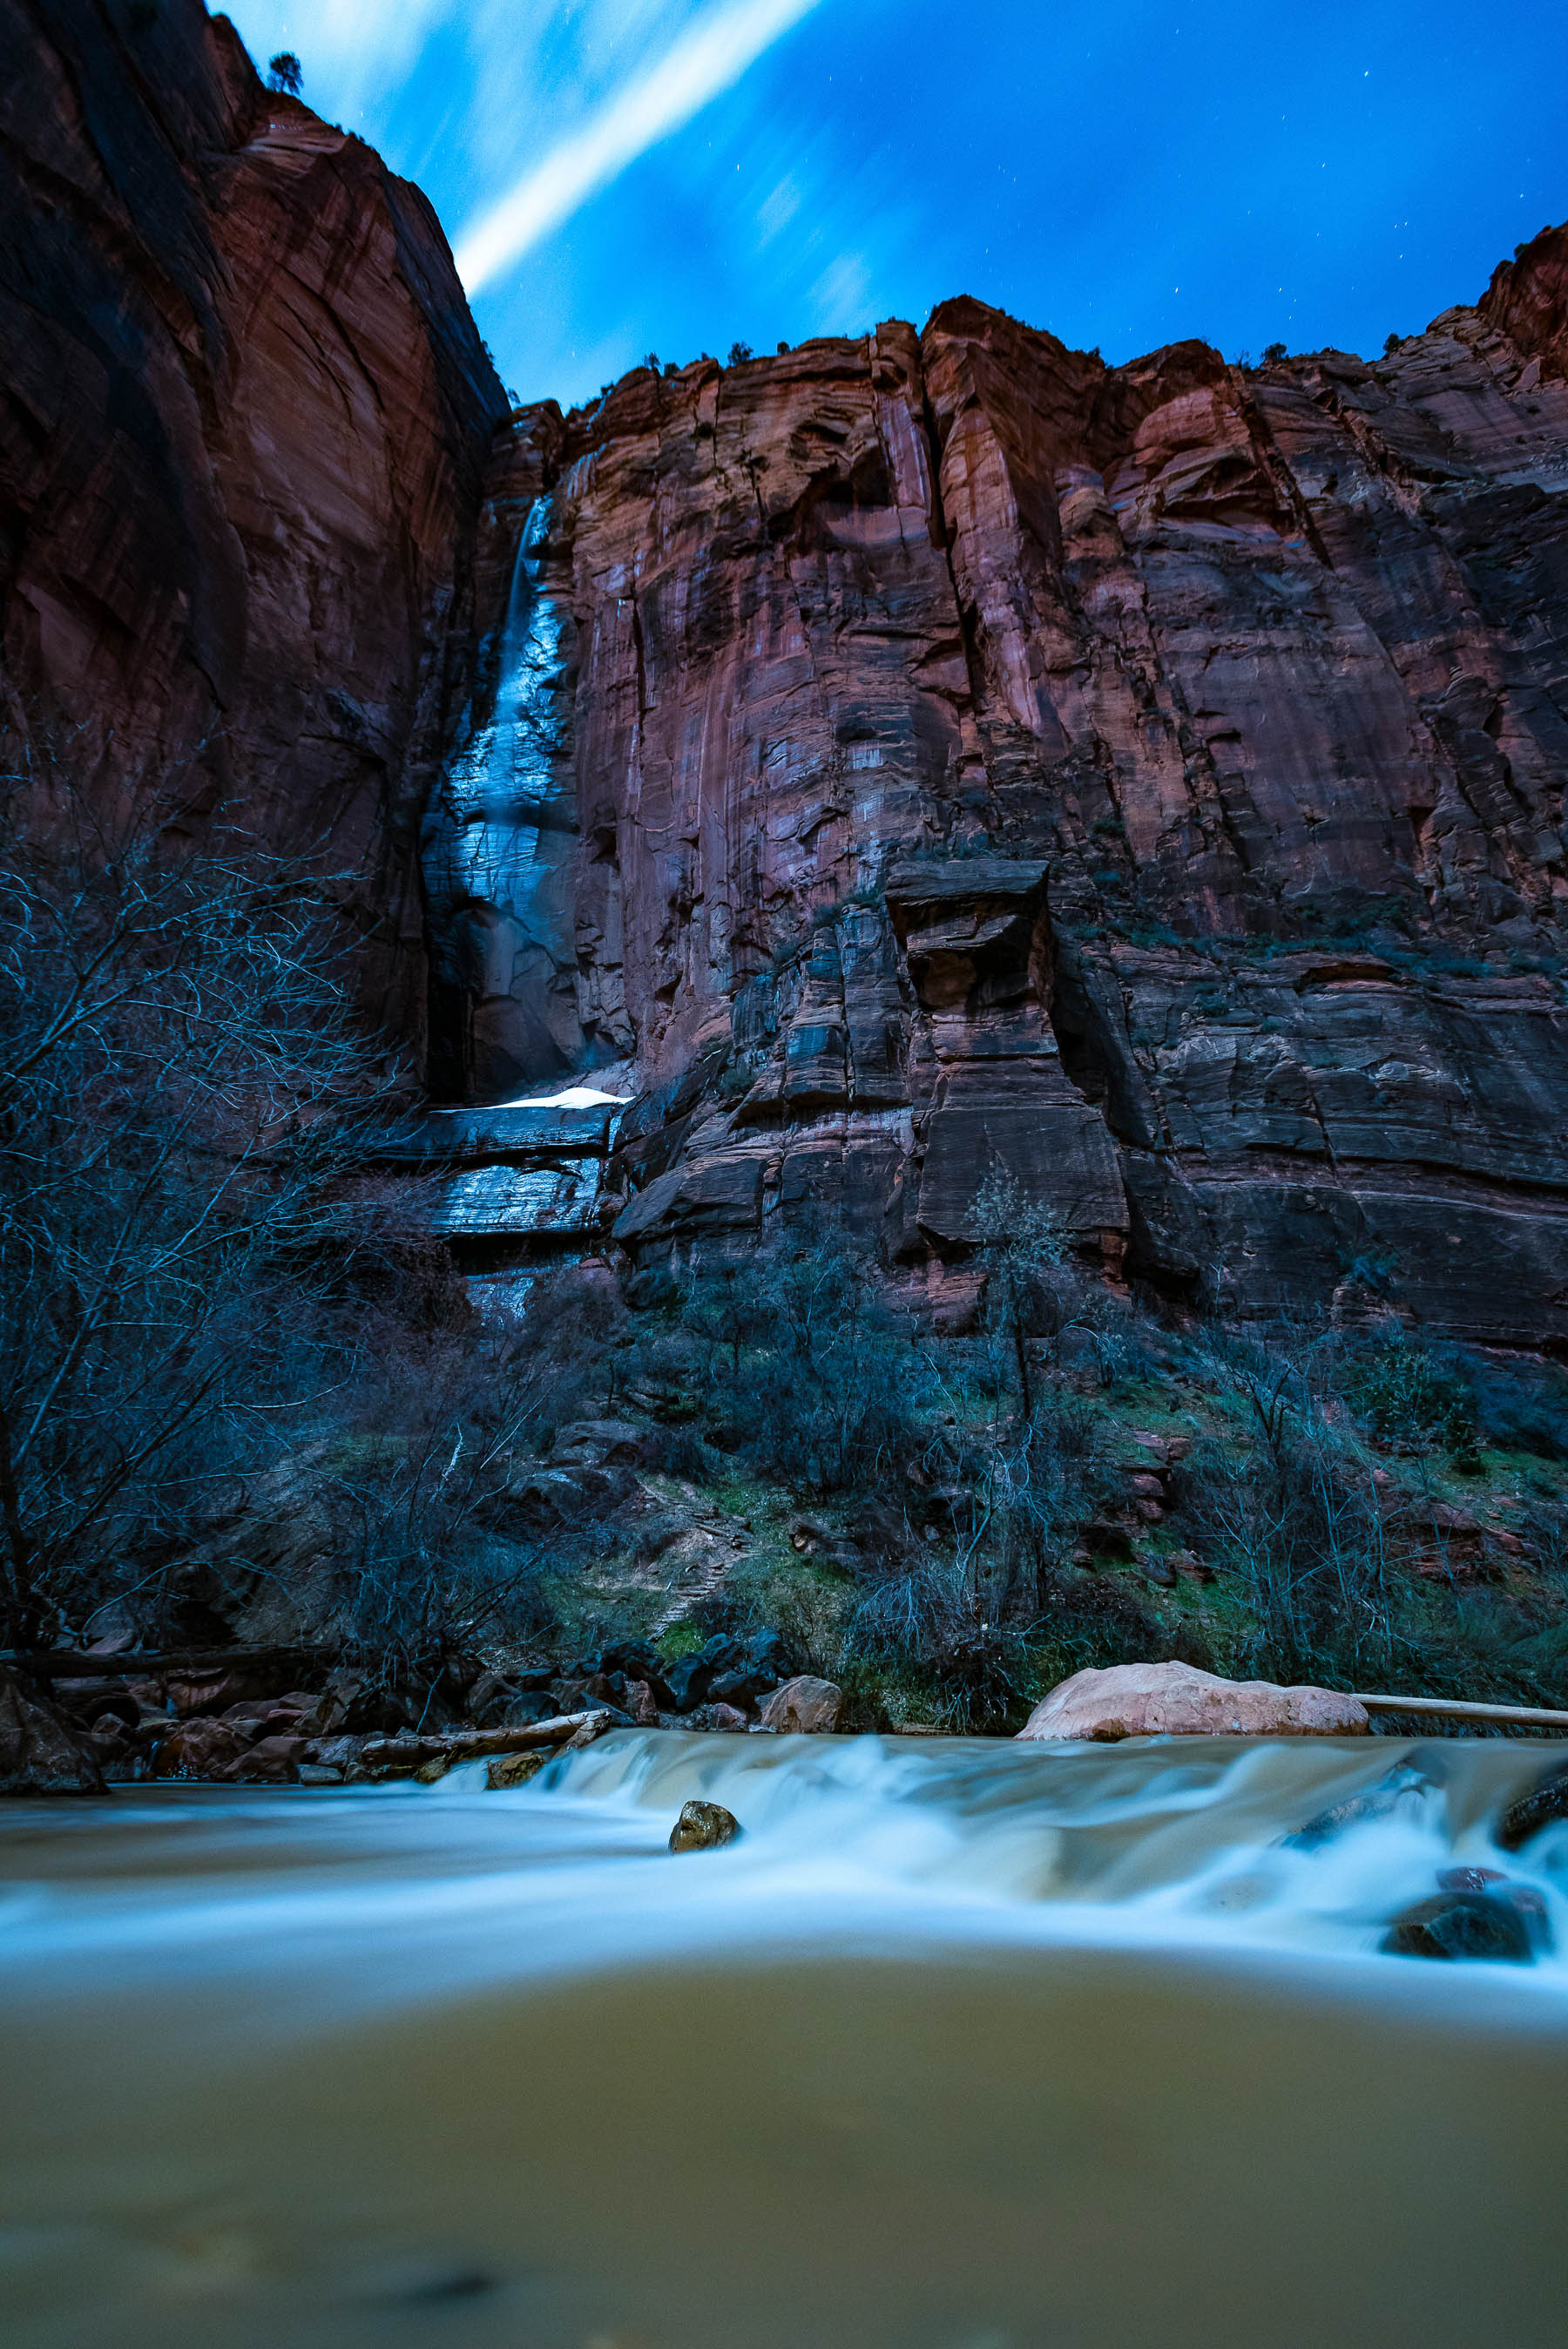 Temple of Sinawava in Zion National Park